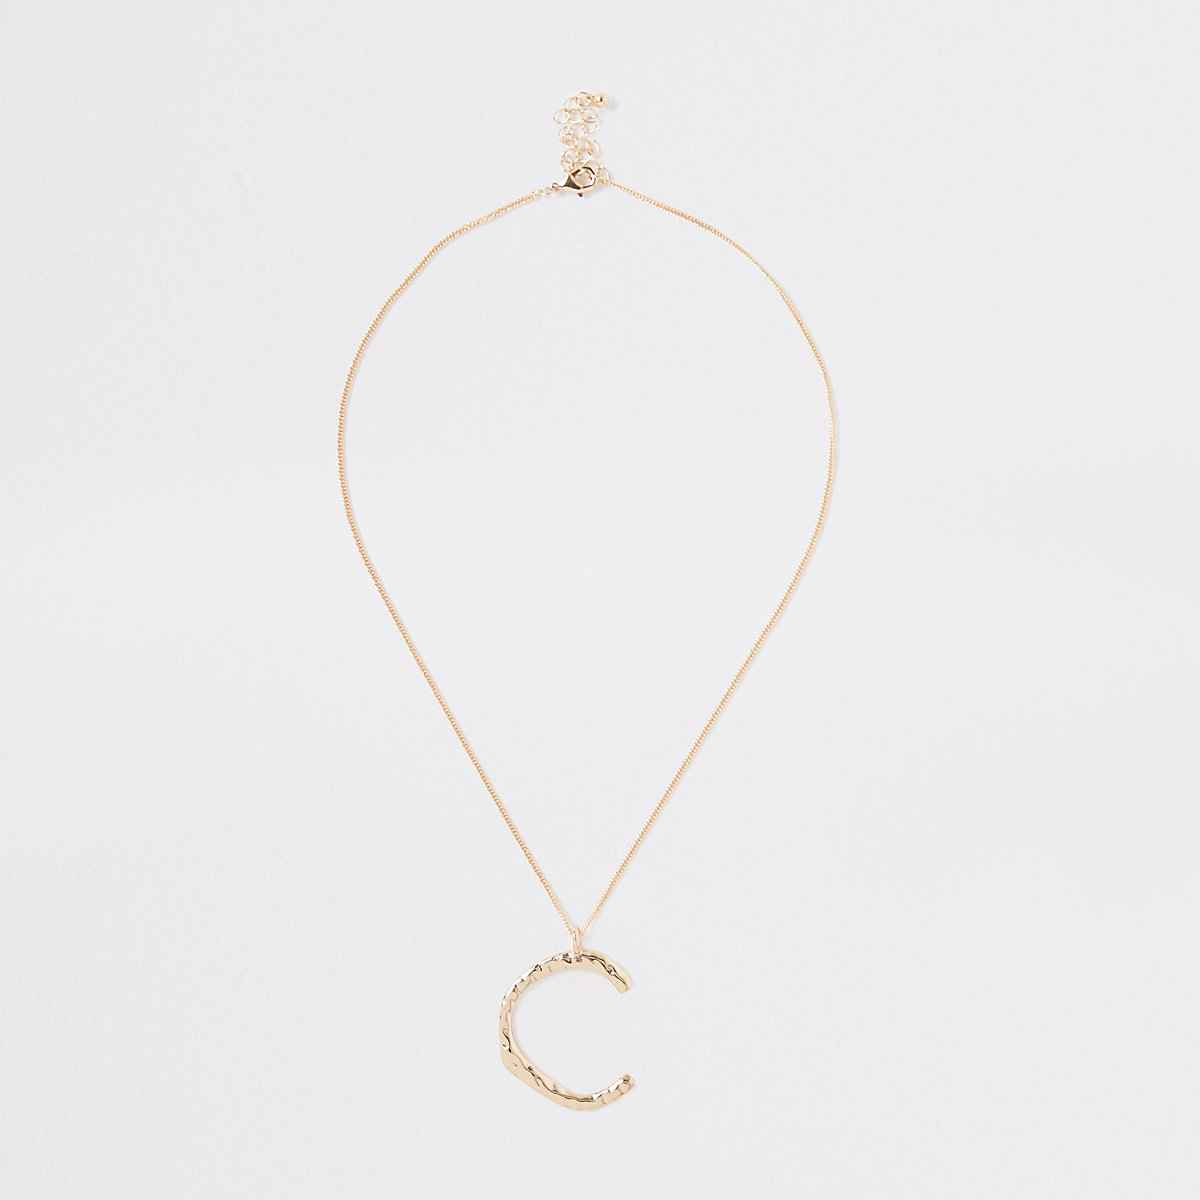 Gold tone large initial 'C' necklace